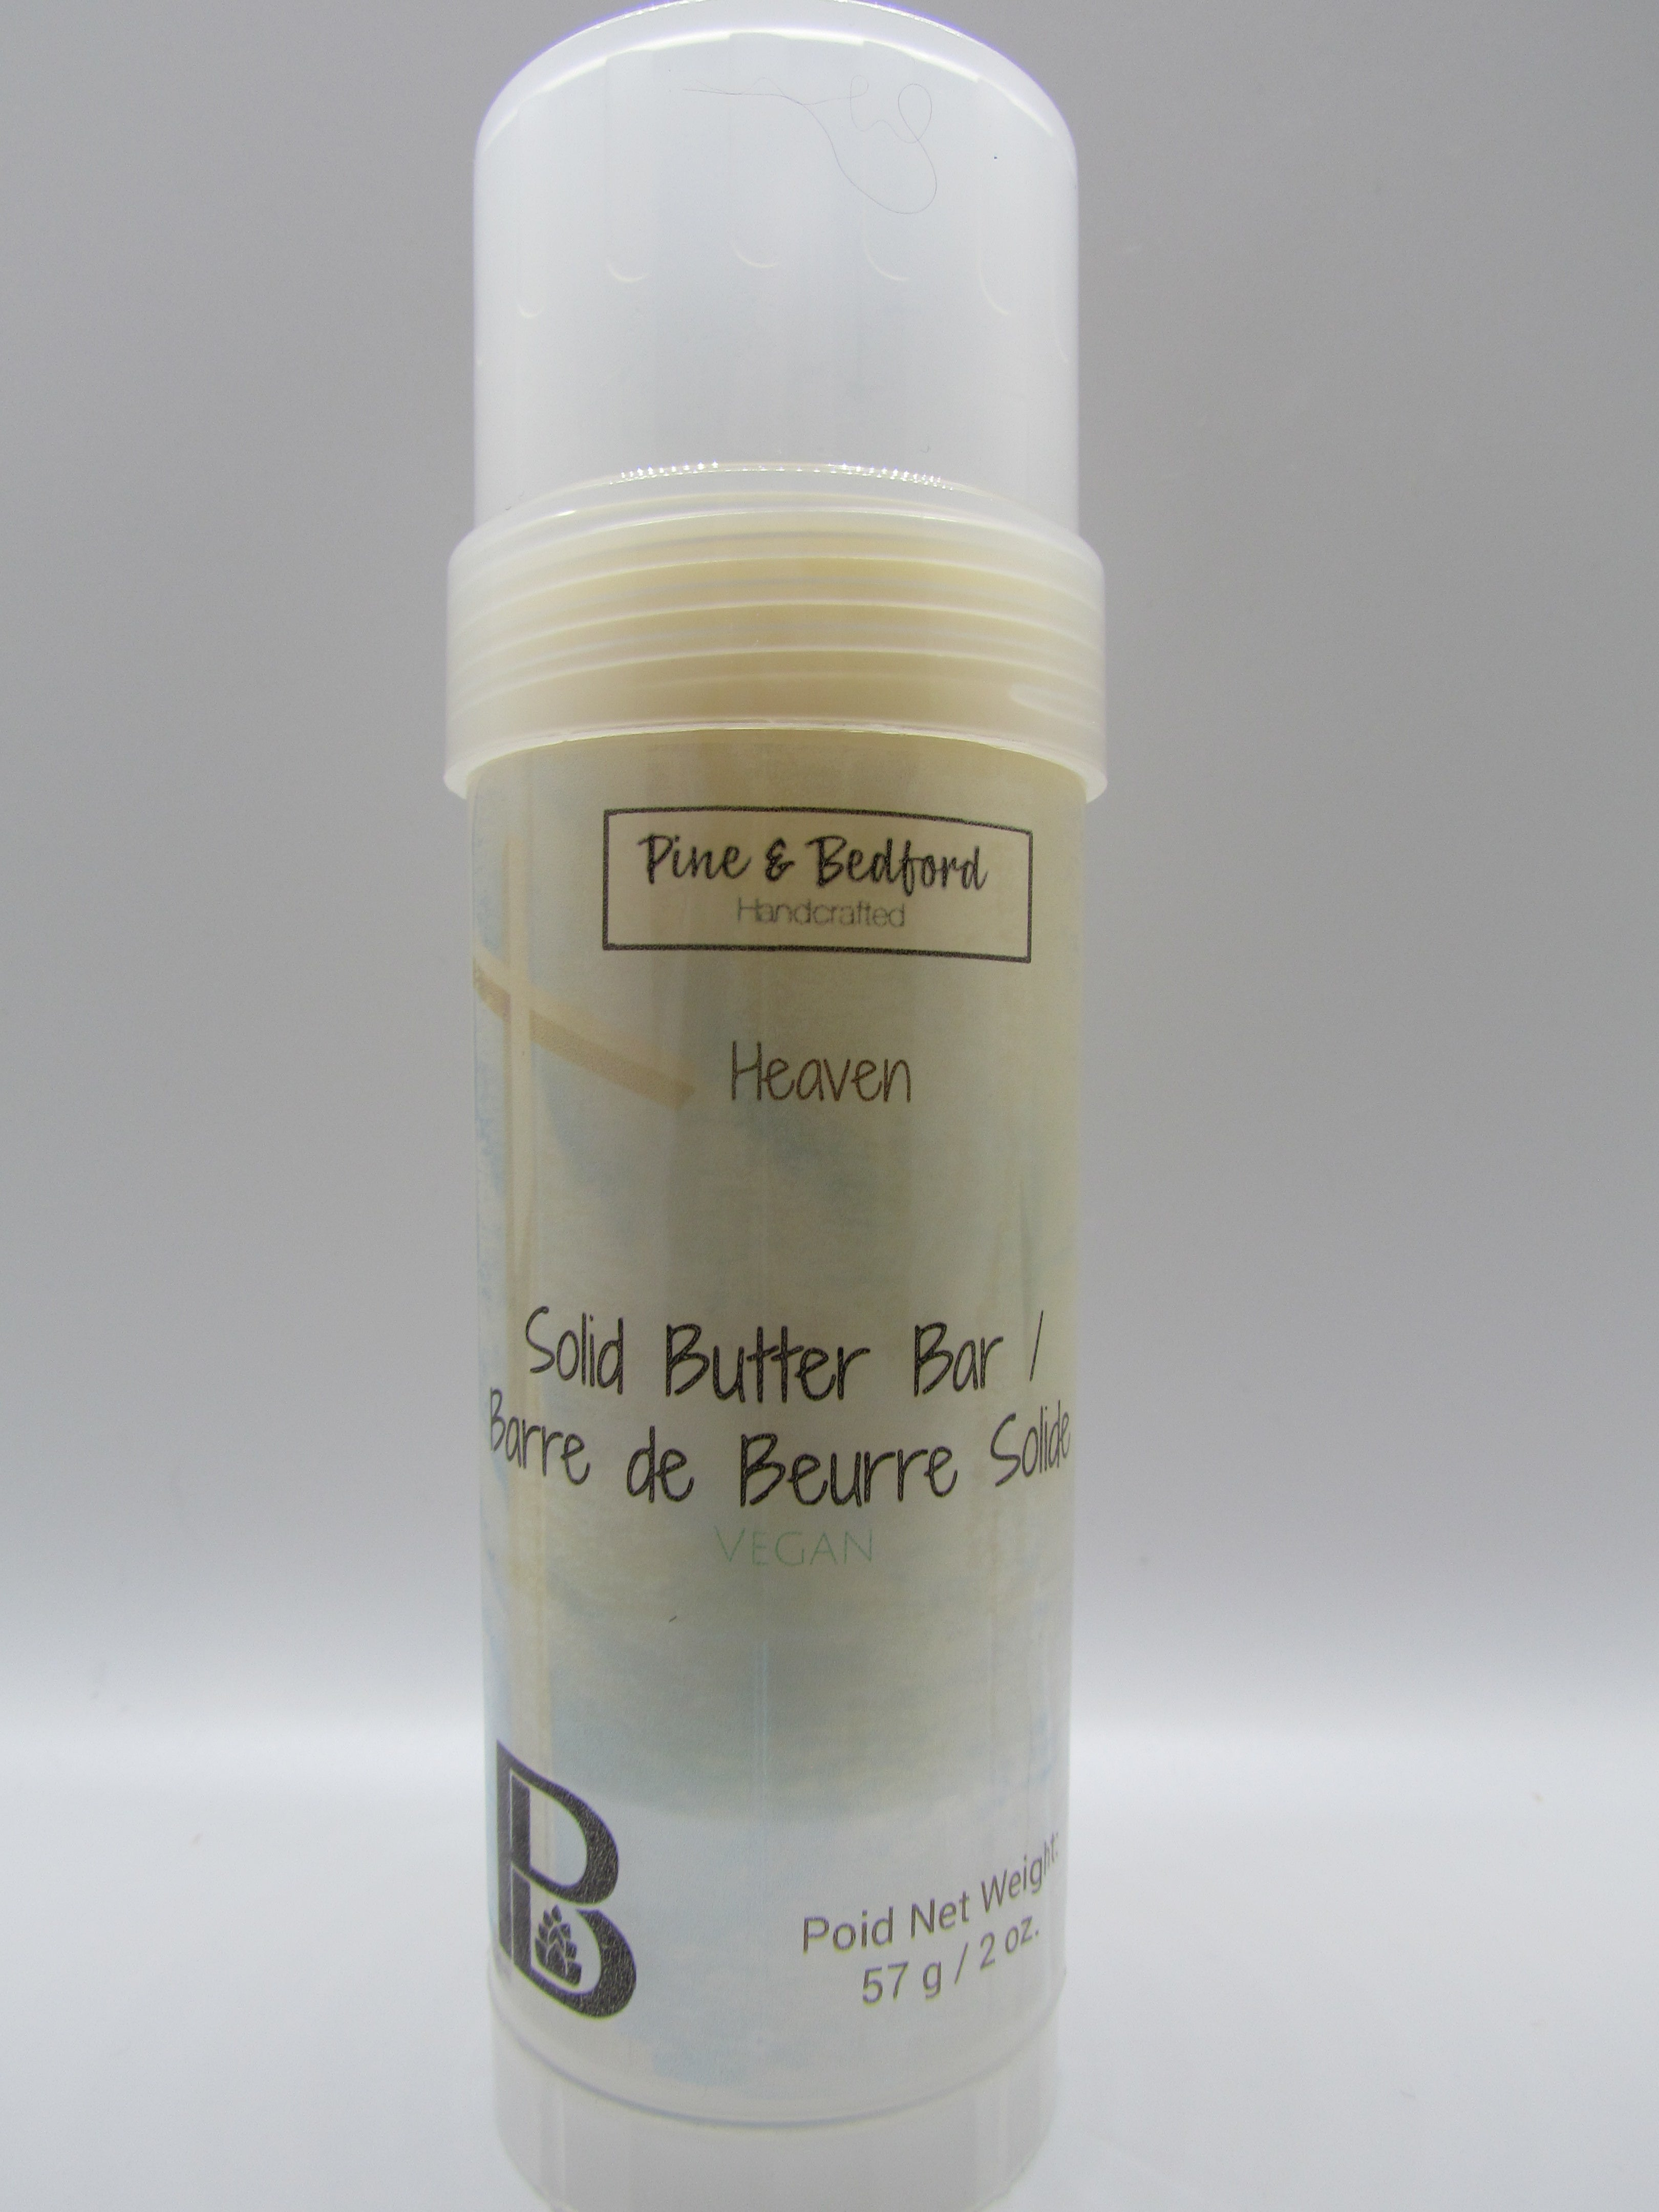 Pine and Bedford's Solid Butter Bar is made from Shea, Mango, Jojoba and Aloe Butters and melts on contact with skin. Two fragrance options are available: Heaven is a fresh unisex fragrance, and Grace is a Soft floral. Packaged in a convenient roll-up container. Heaven fragrance is shown here.